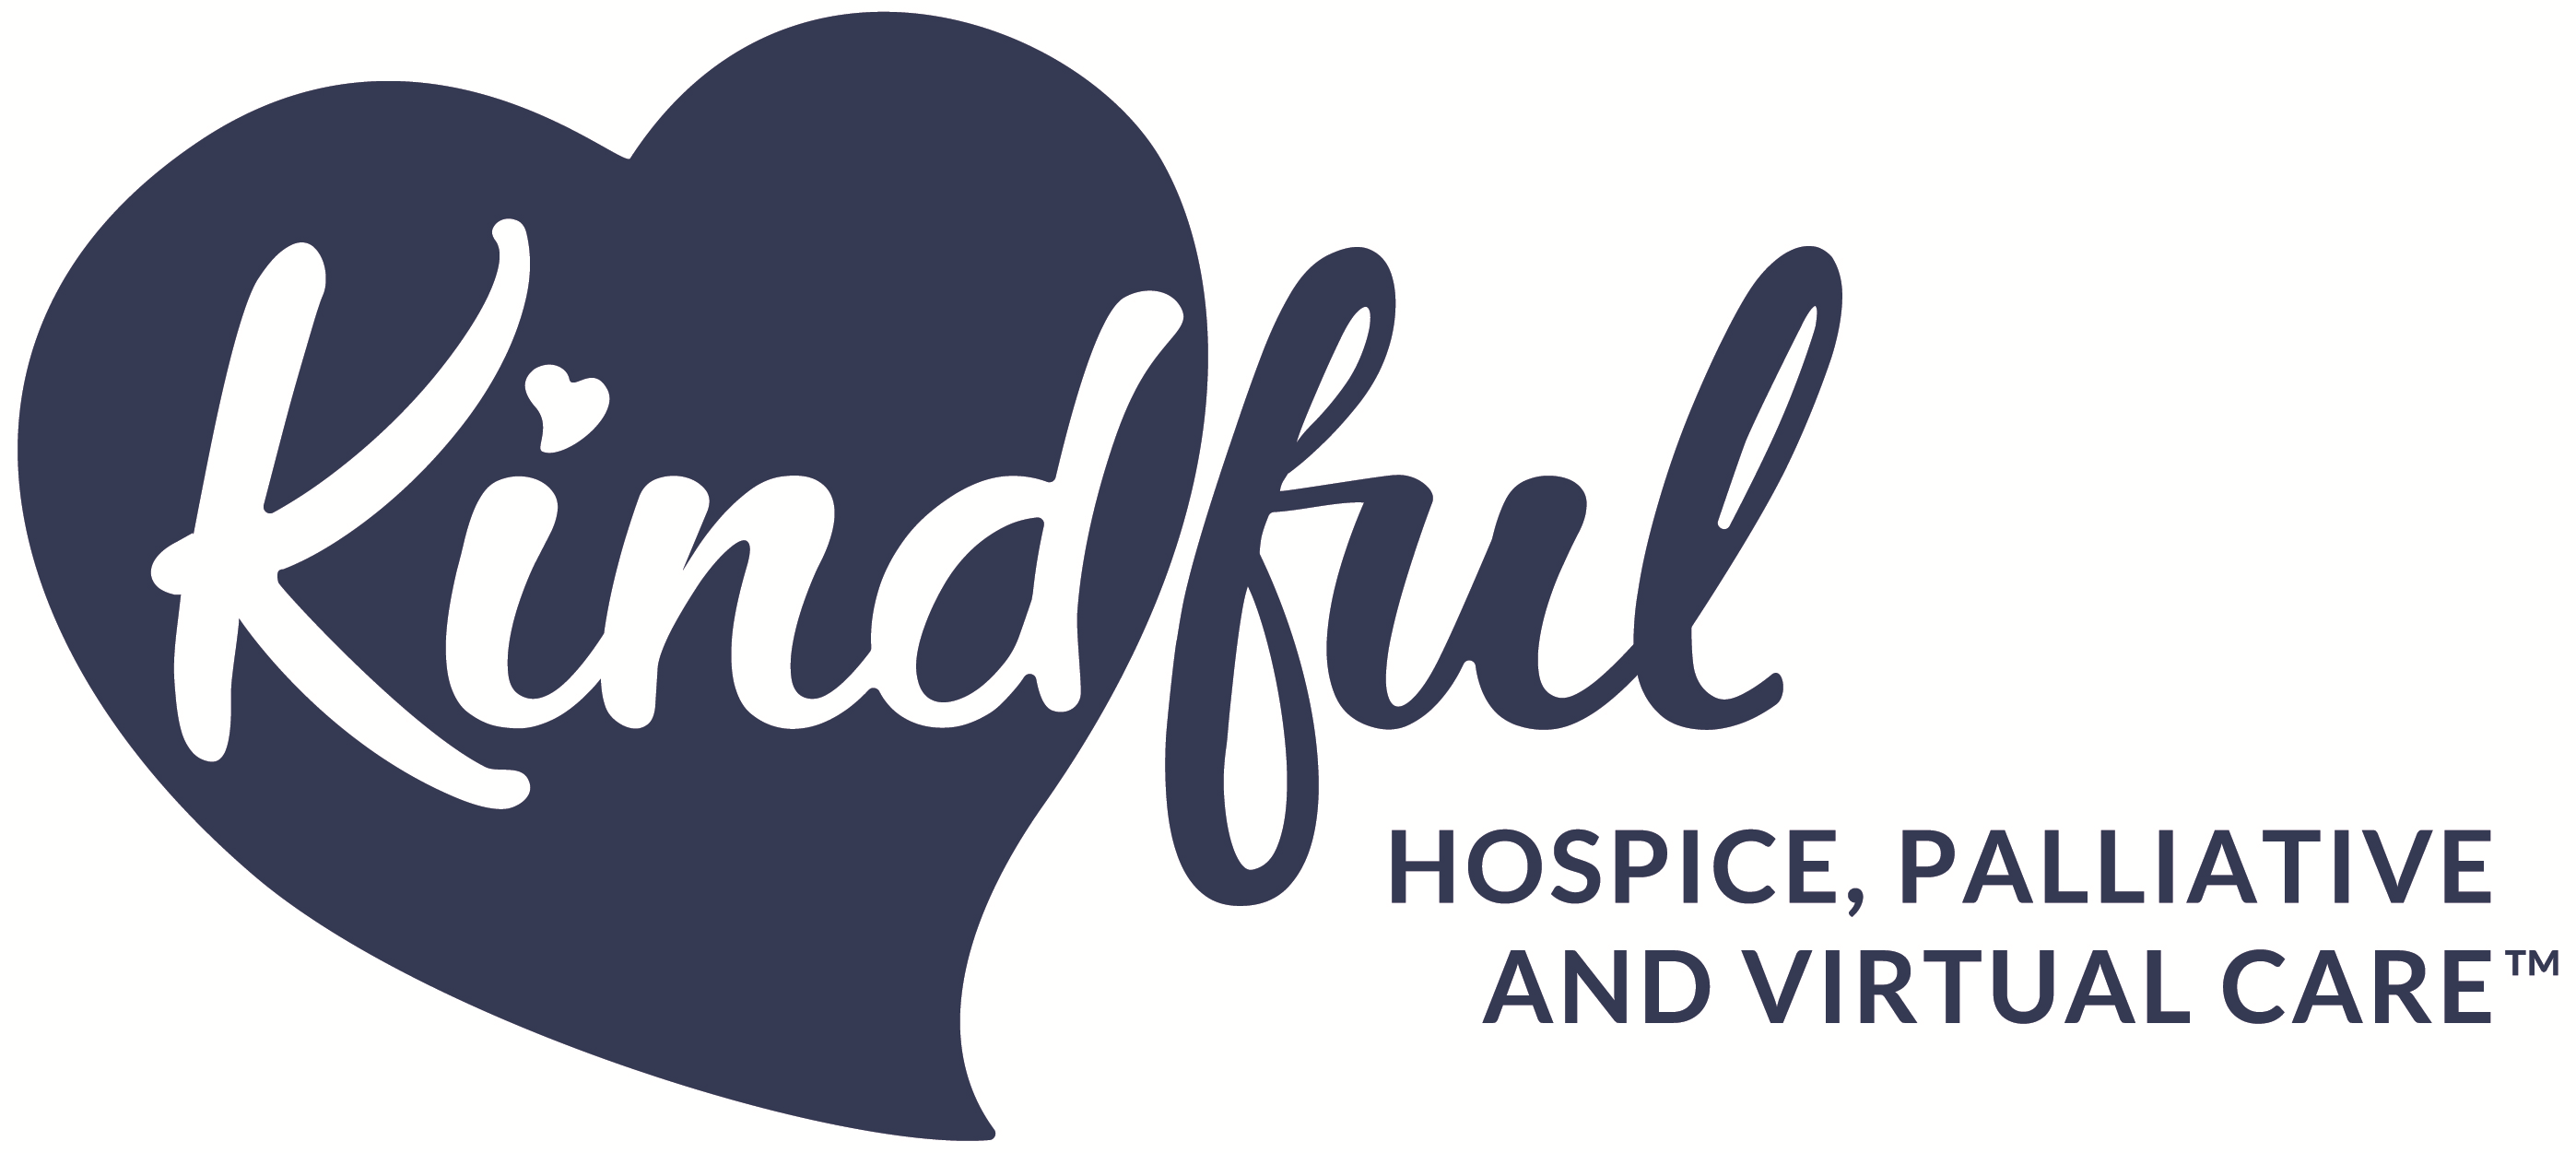 Kindful Hospice logo